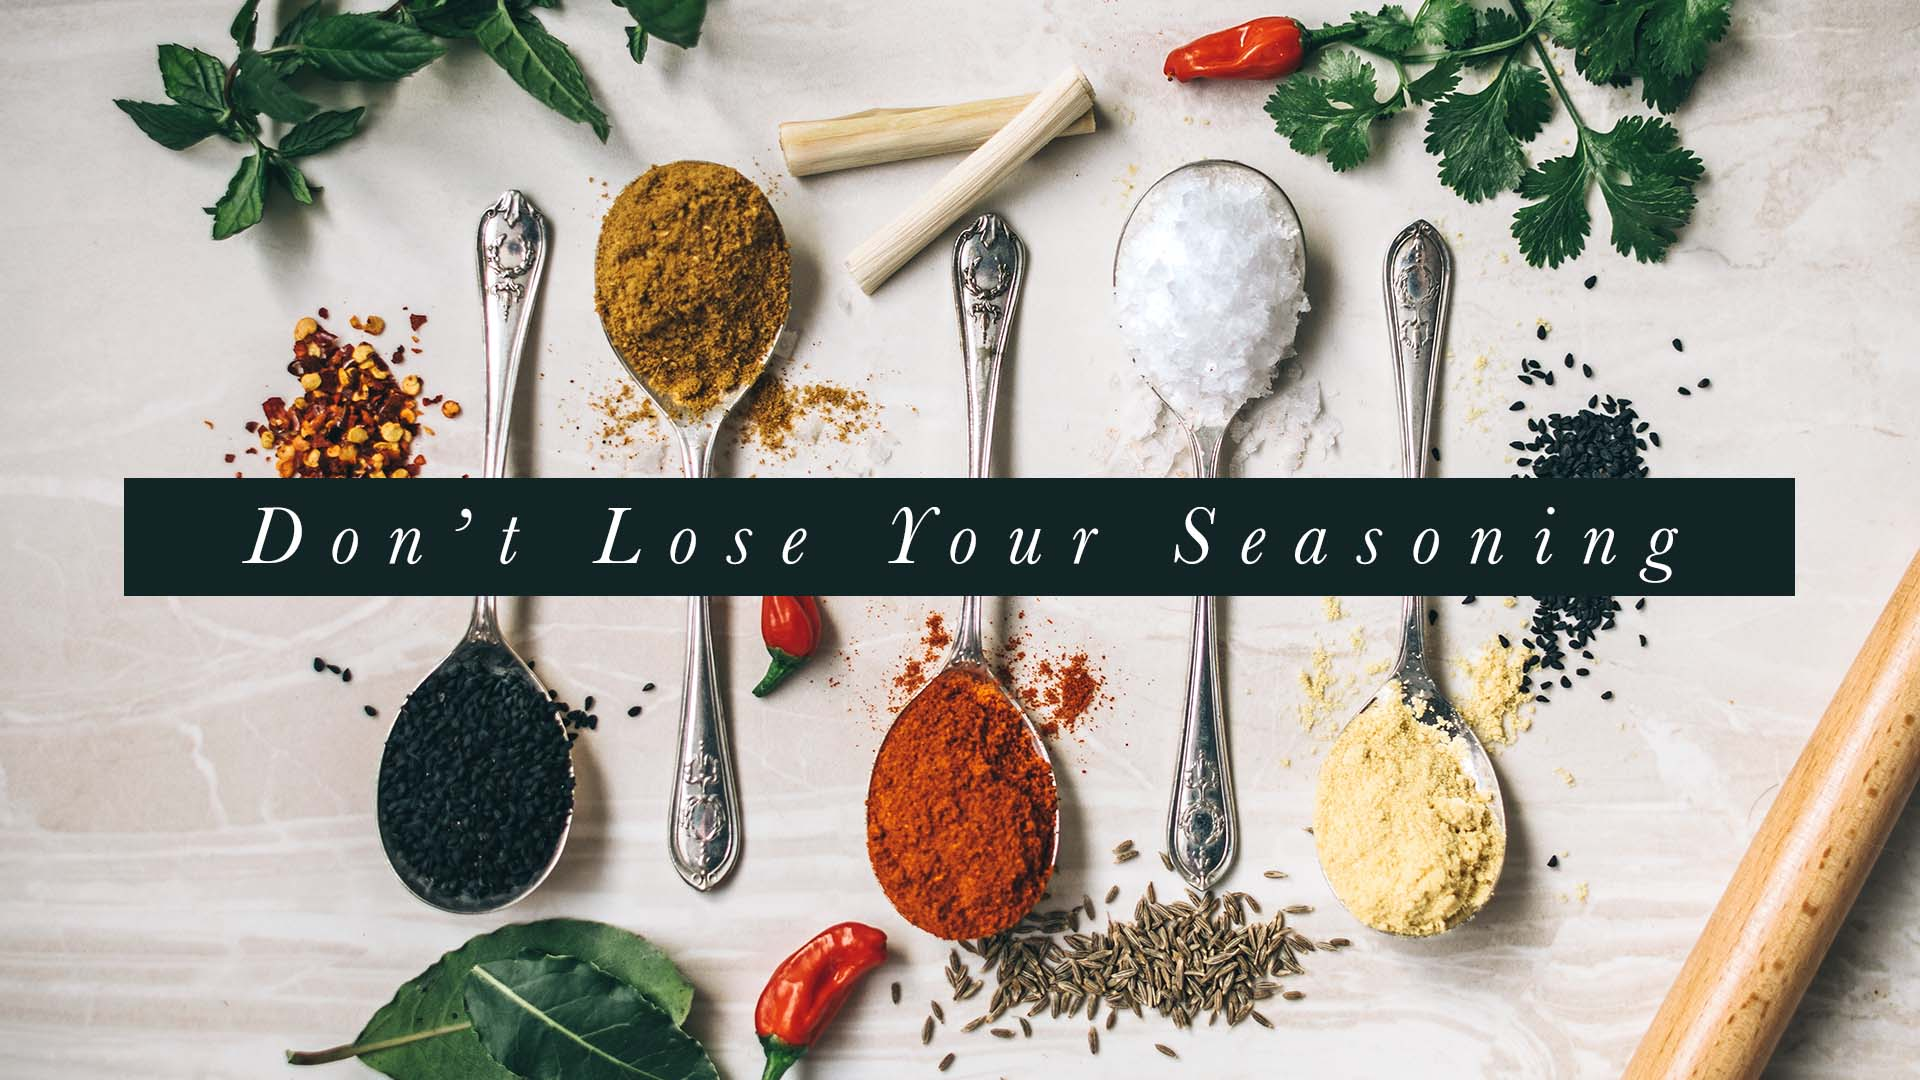 Don't Lose Your Seasoning Banner - Picture of Various Seasonings